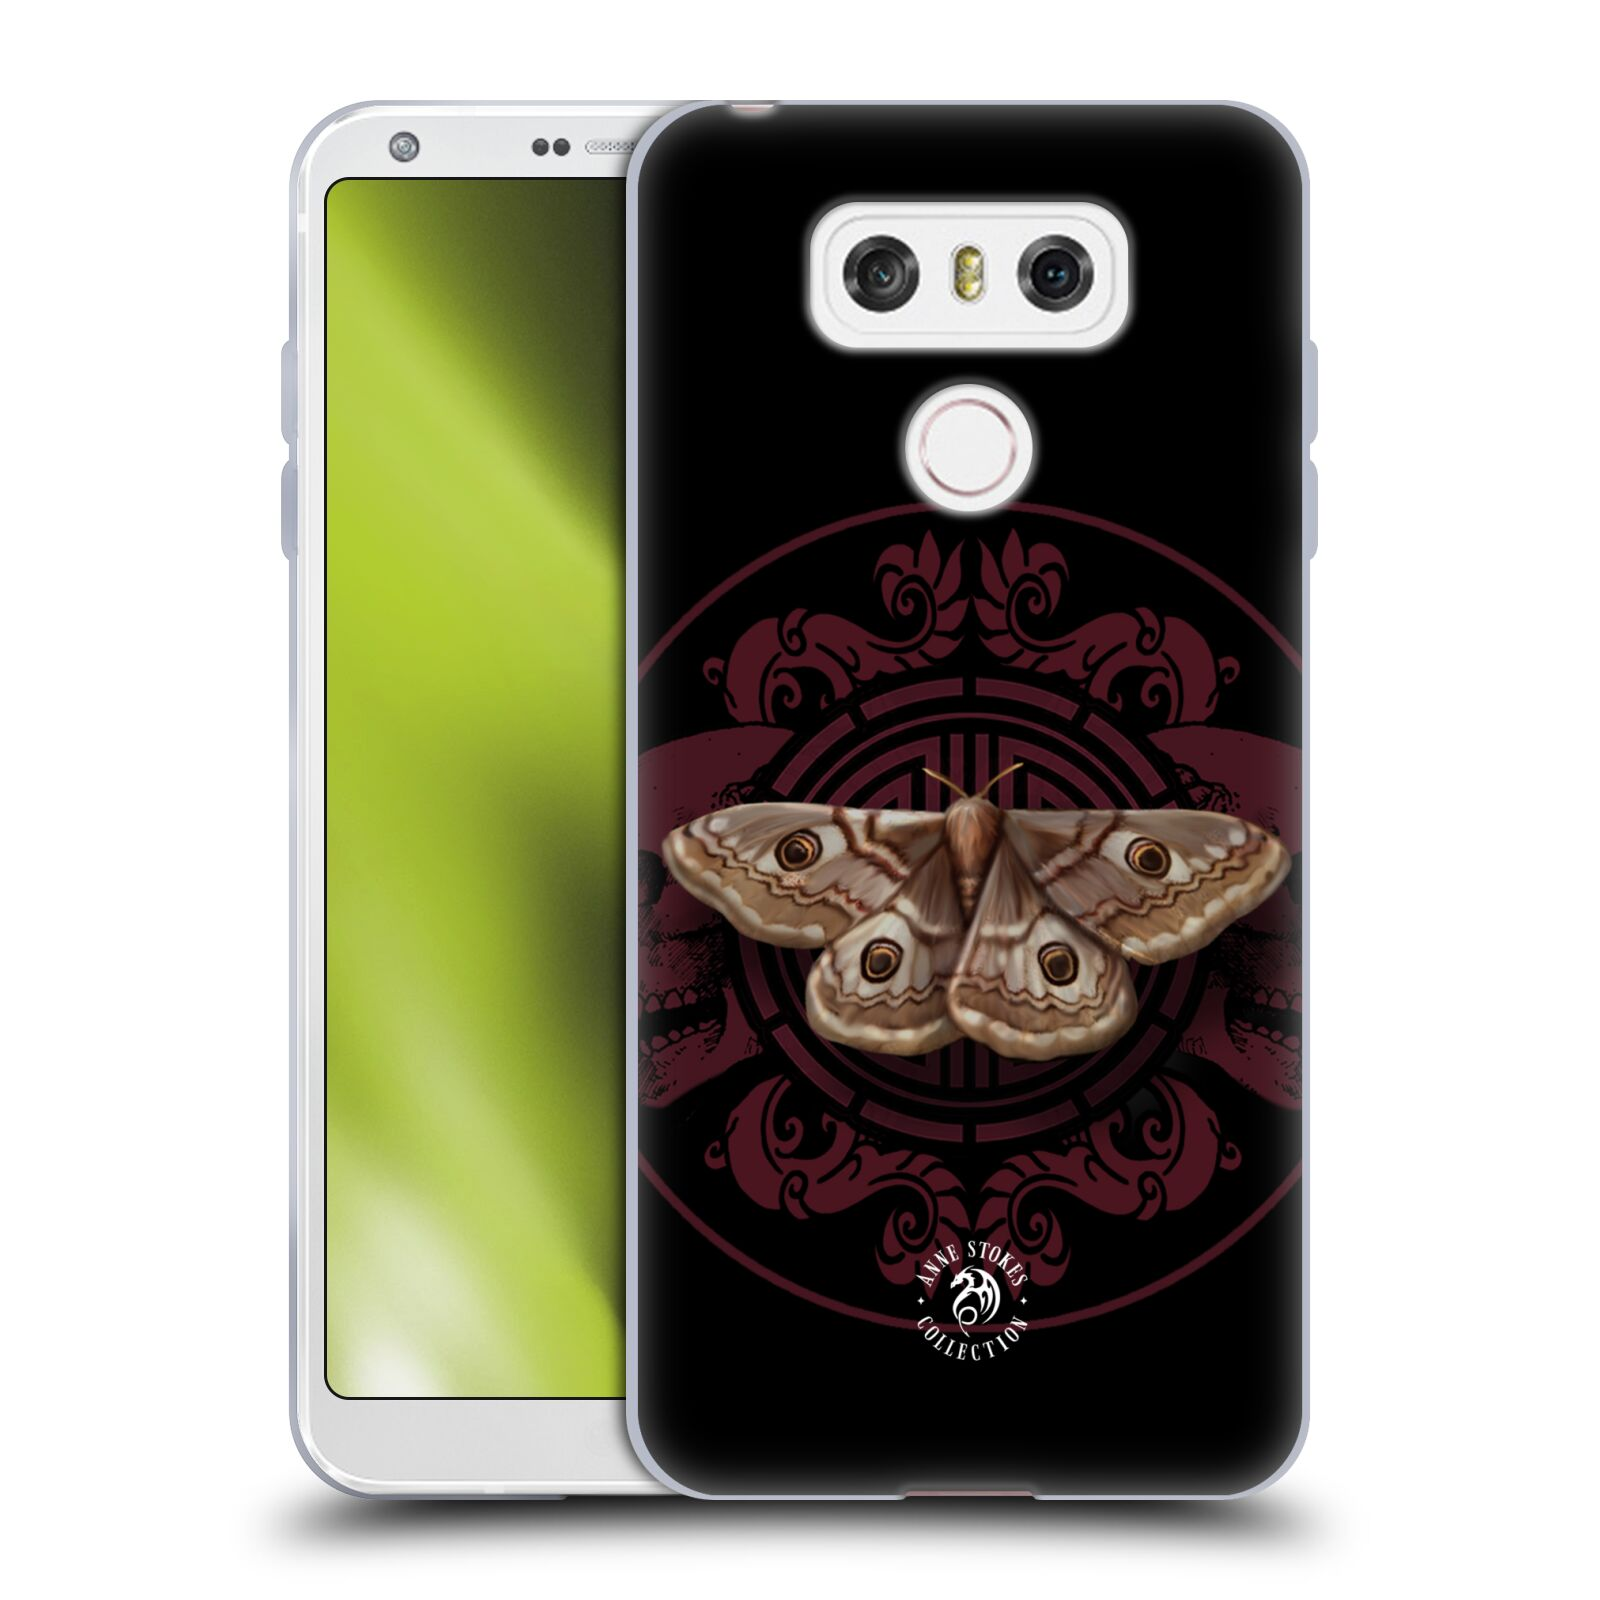 OFFICIAL-ANNE-STOKES-ORNAMENTS-SOFT-GEL-CASE-FOR-LG-PHONES-1